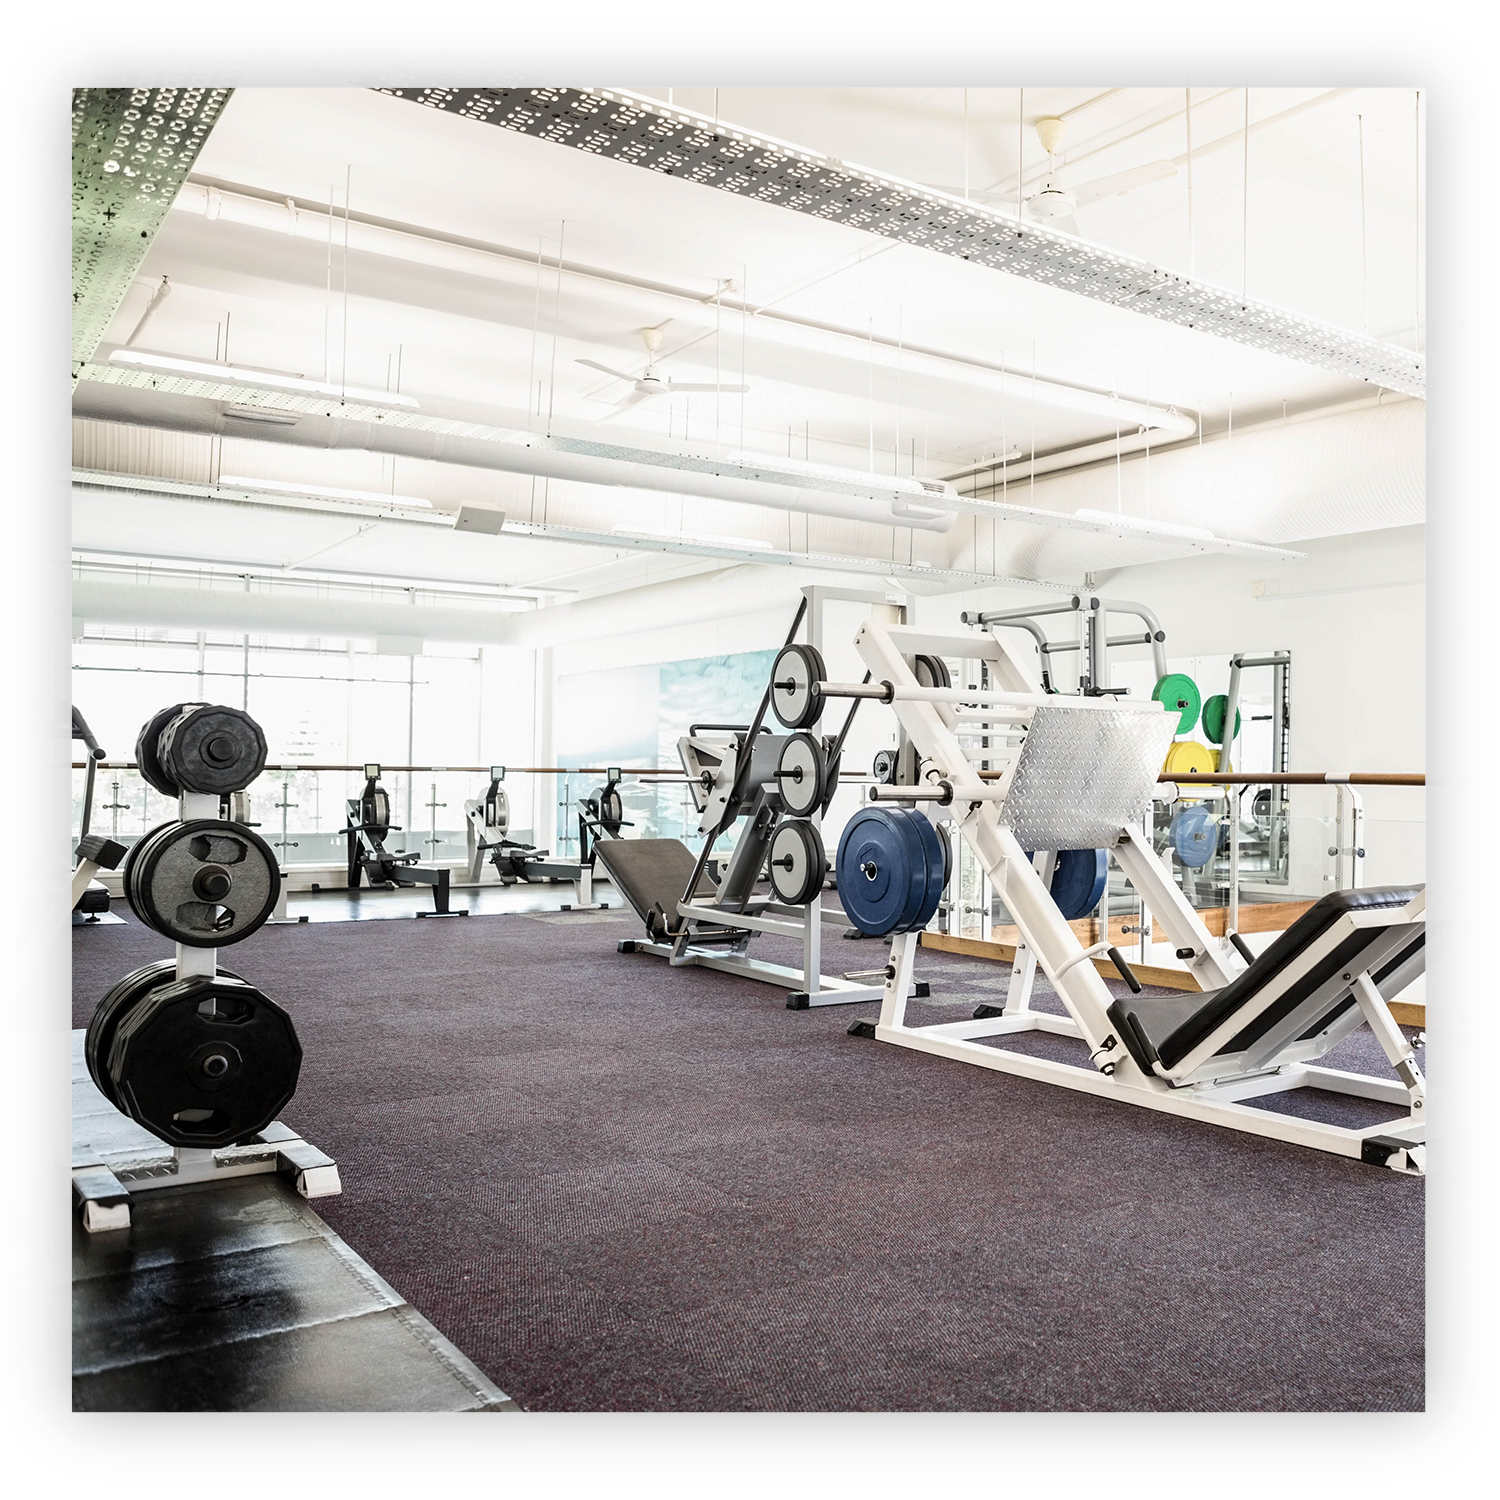 Fitness & Wellness Facilities - These facilities have discovered their competitive edge is filling the need for proactive musculoskeletal health.